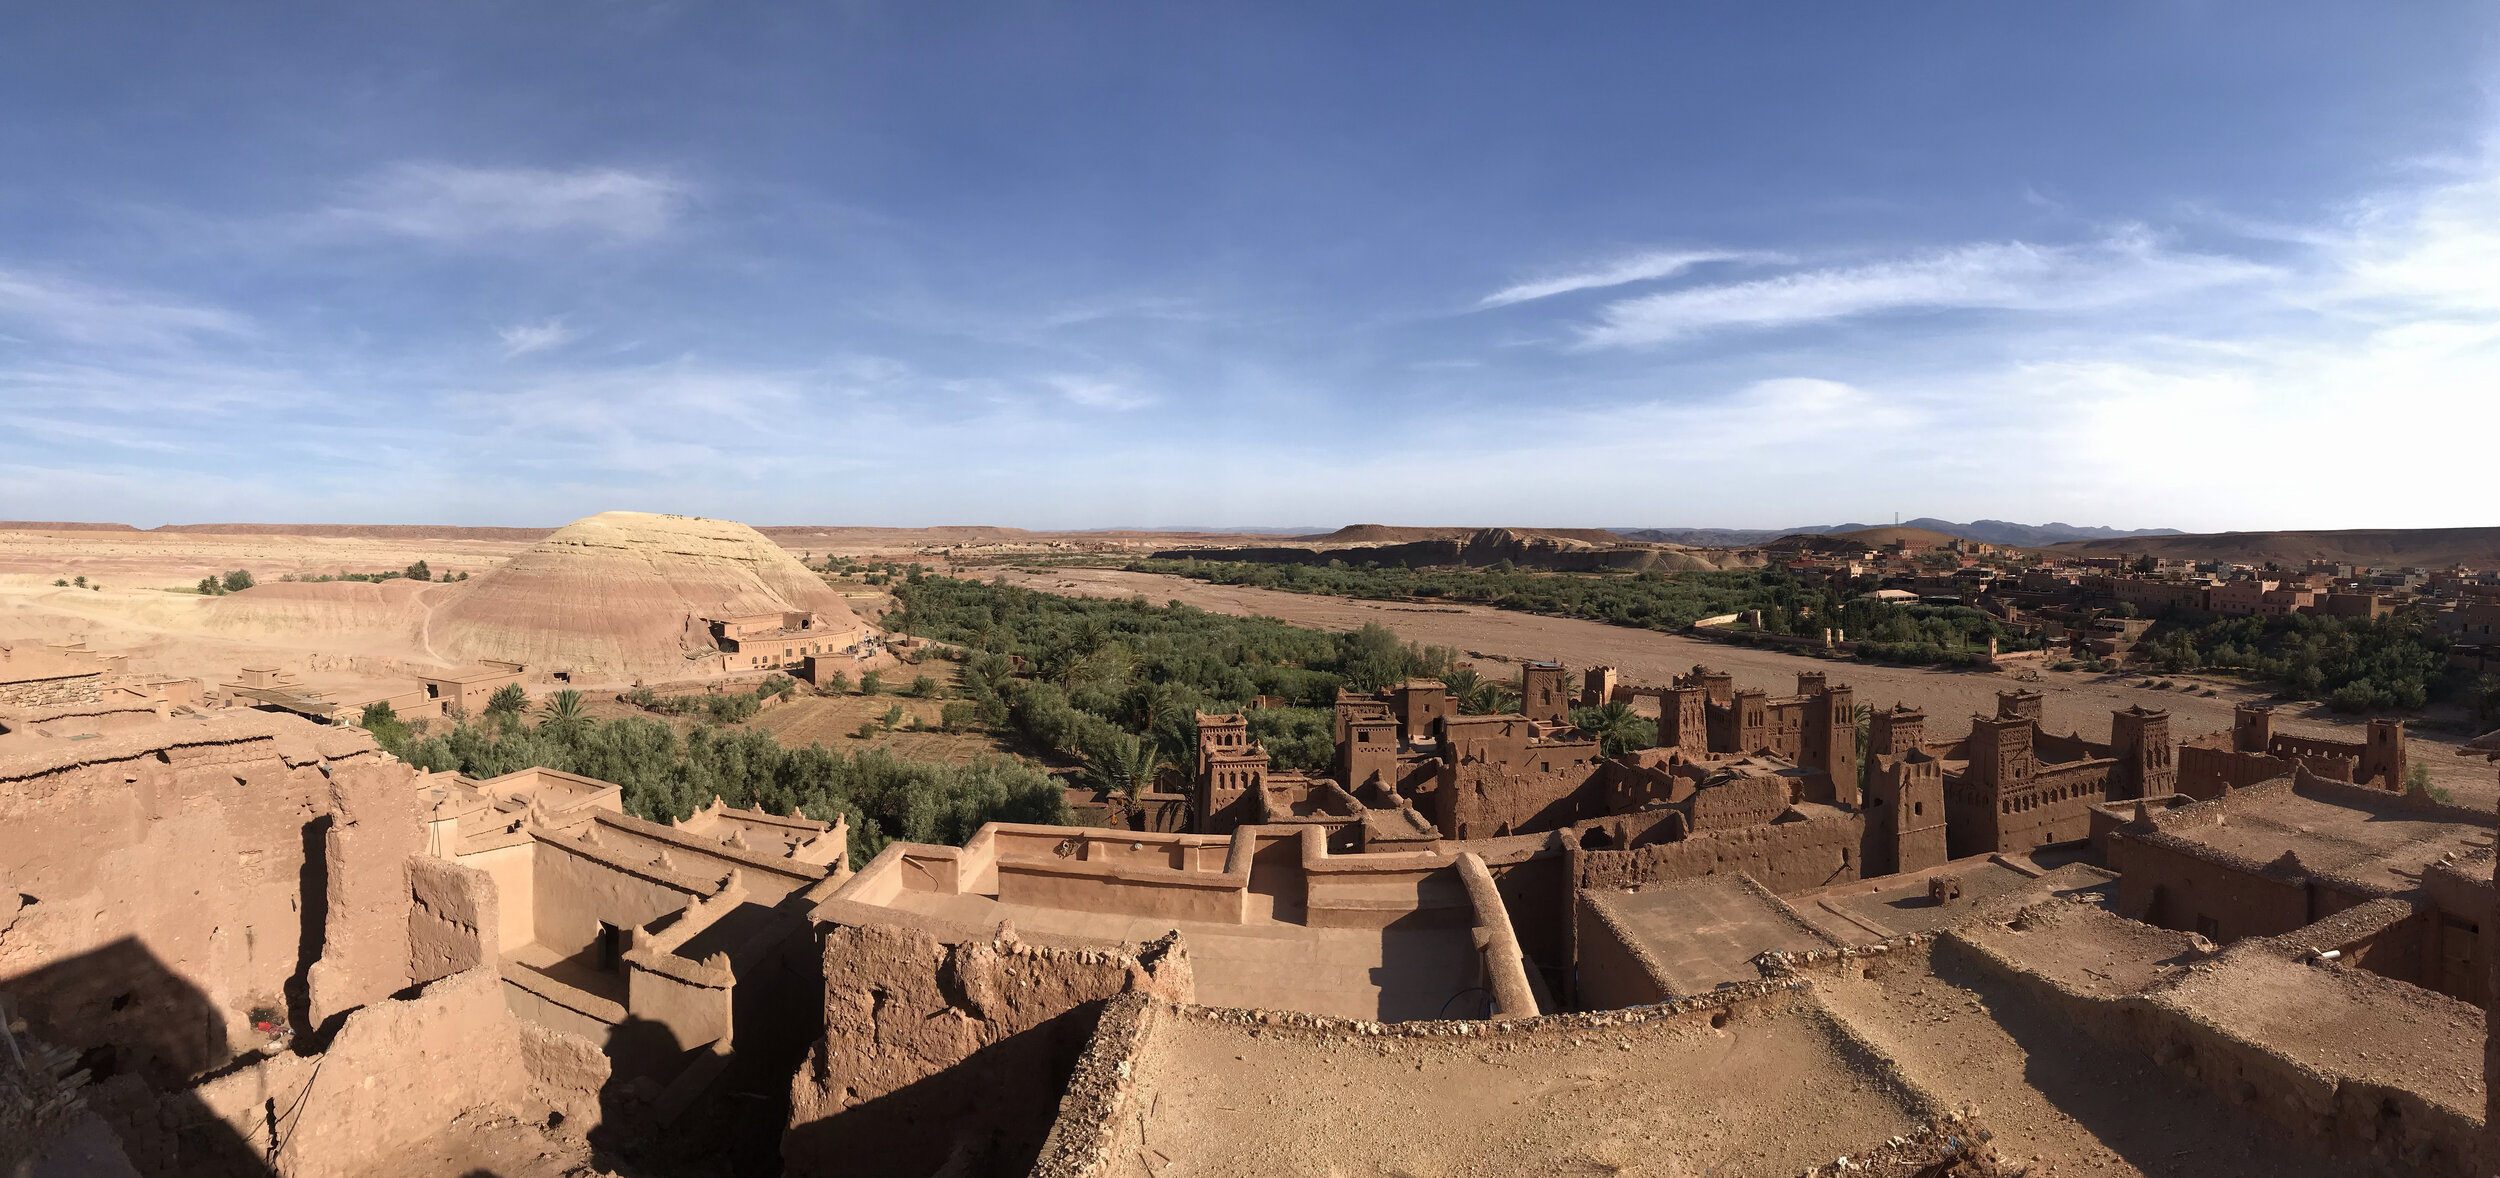 A panoramic view of Ait Ben Haddou